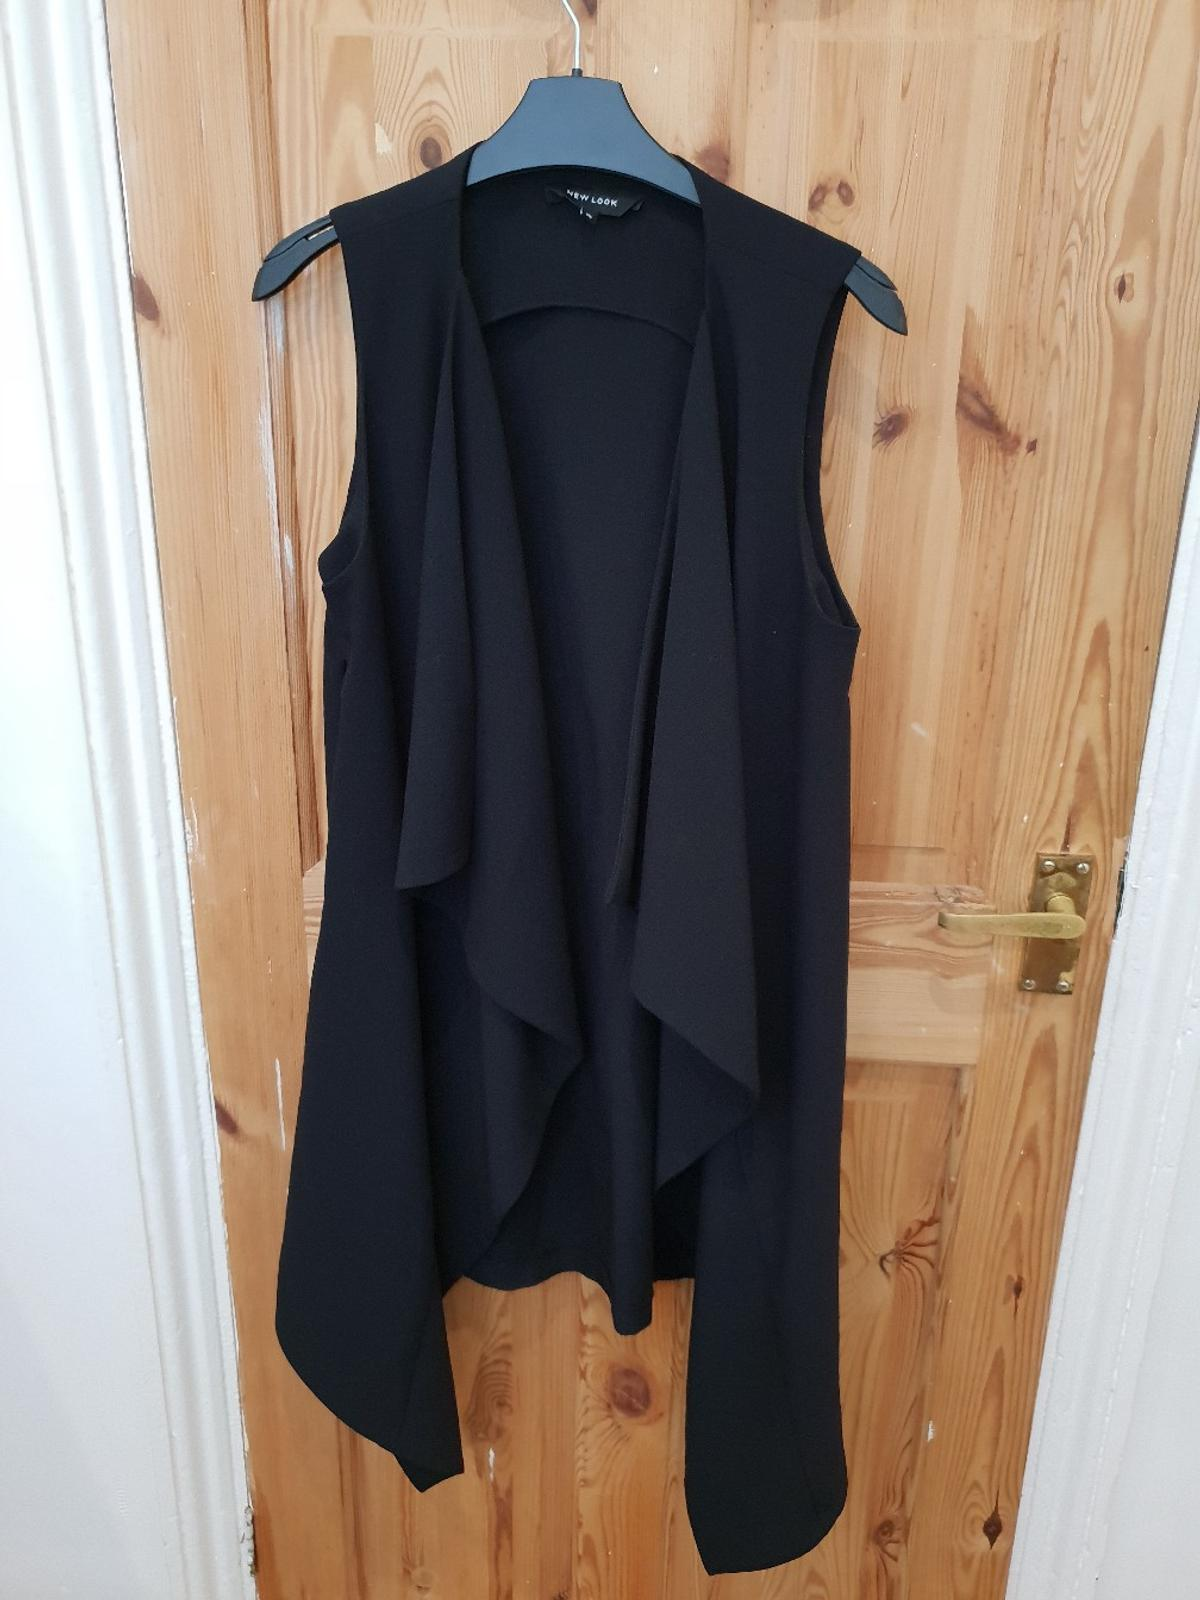 c0ae7ed15bd30 Description. New Look Black Duster Jacket Sleeveless Size 10. Waterfall  style on the front